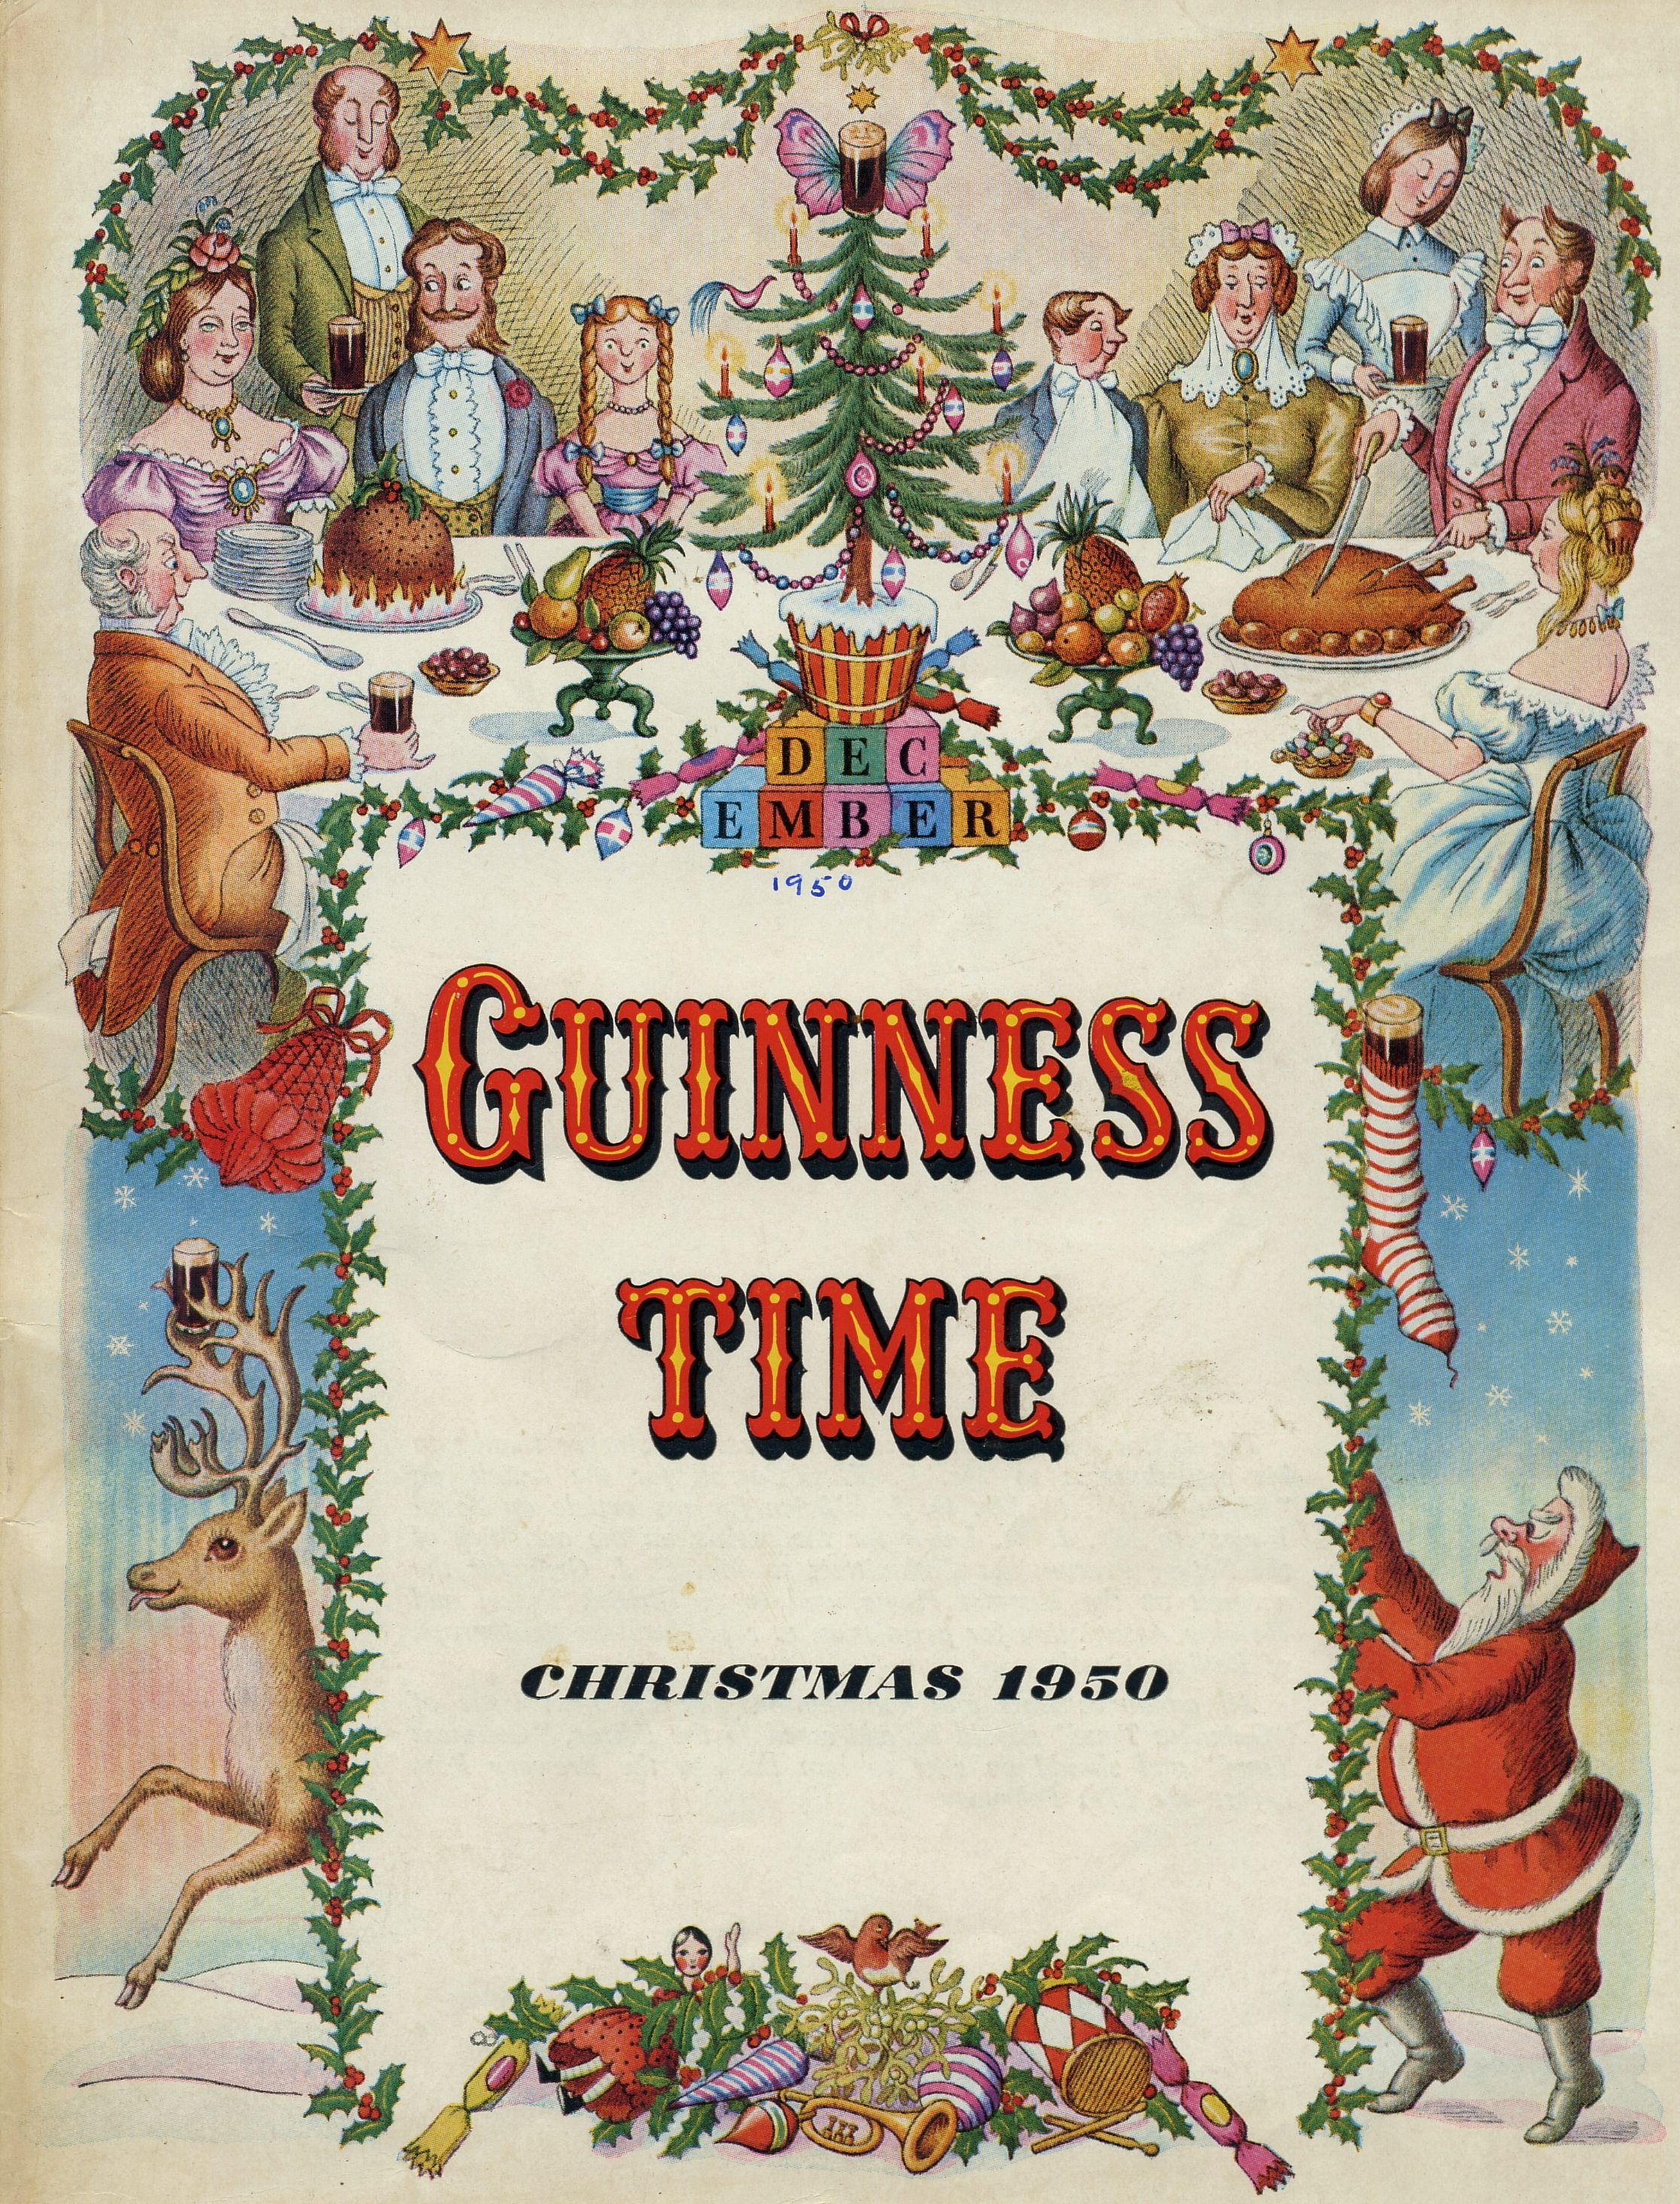 Guinness Time Christmas 1950